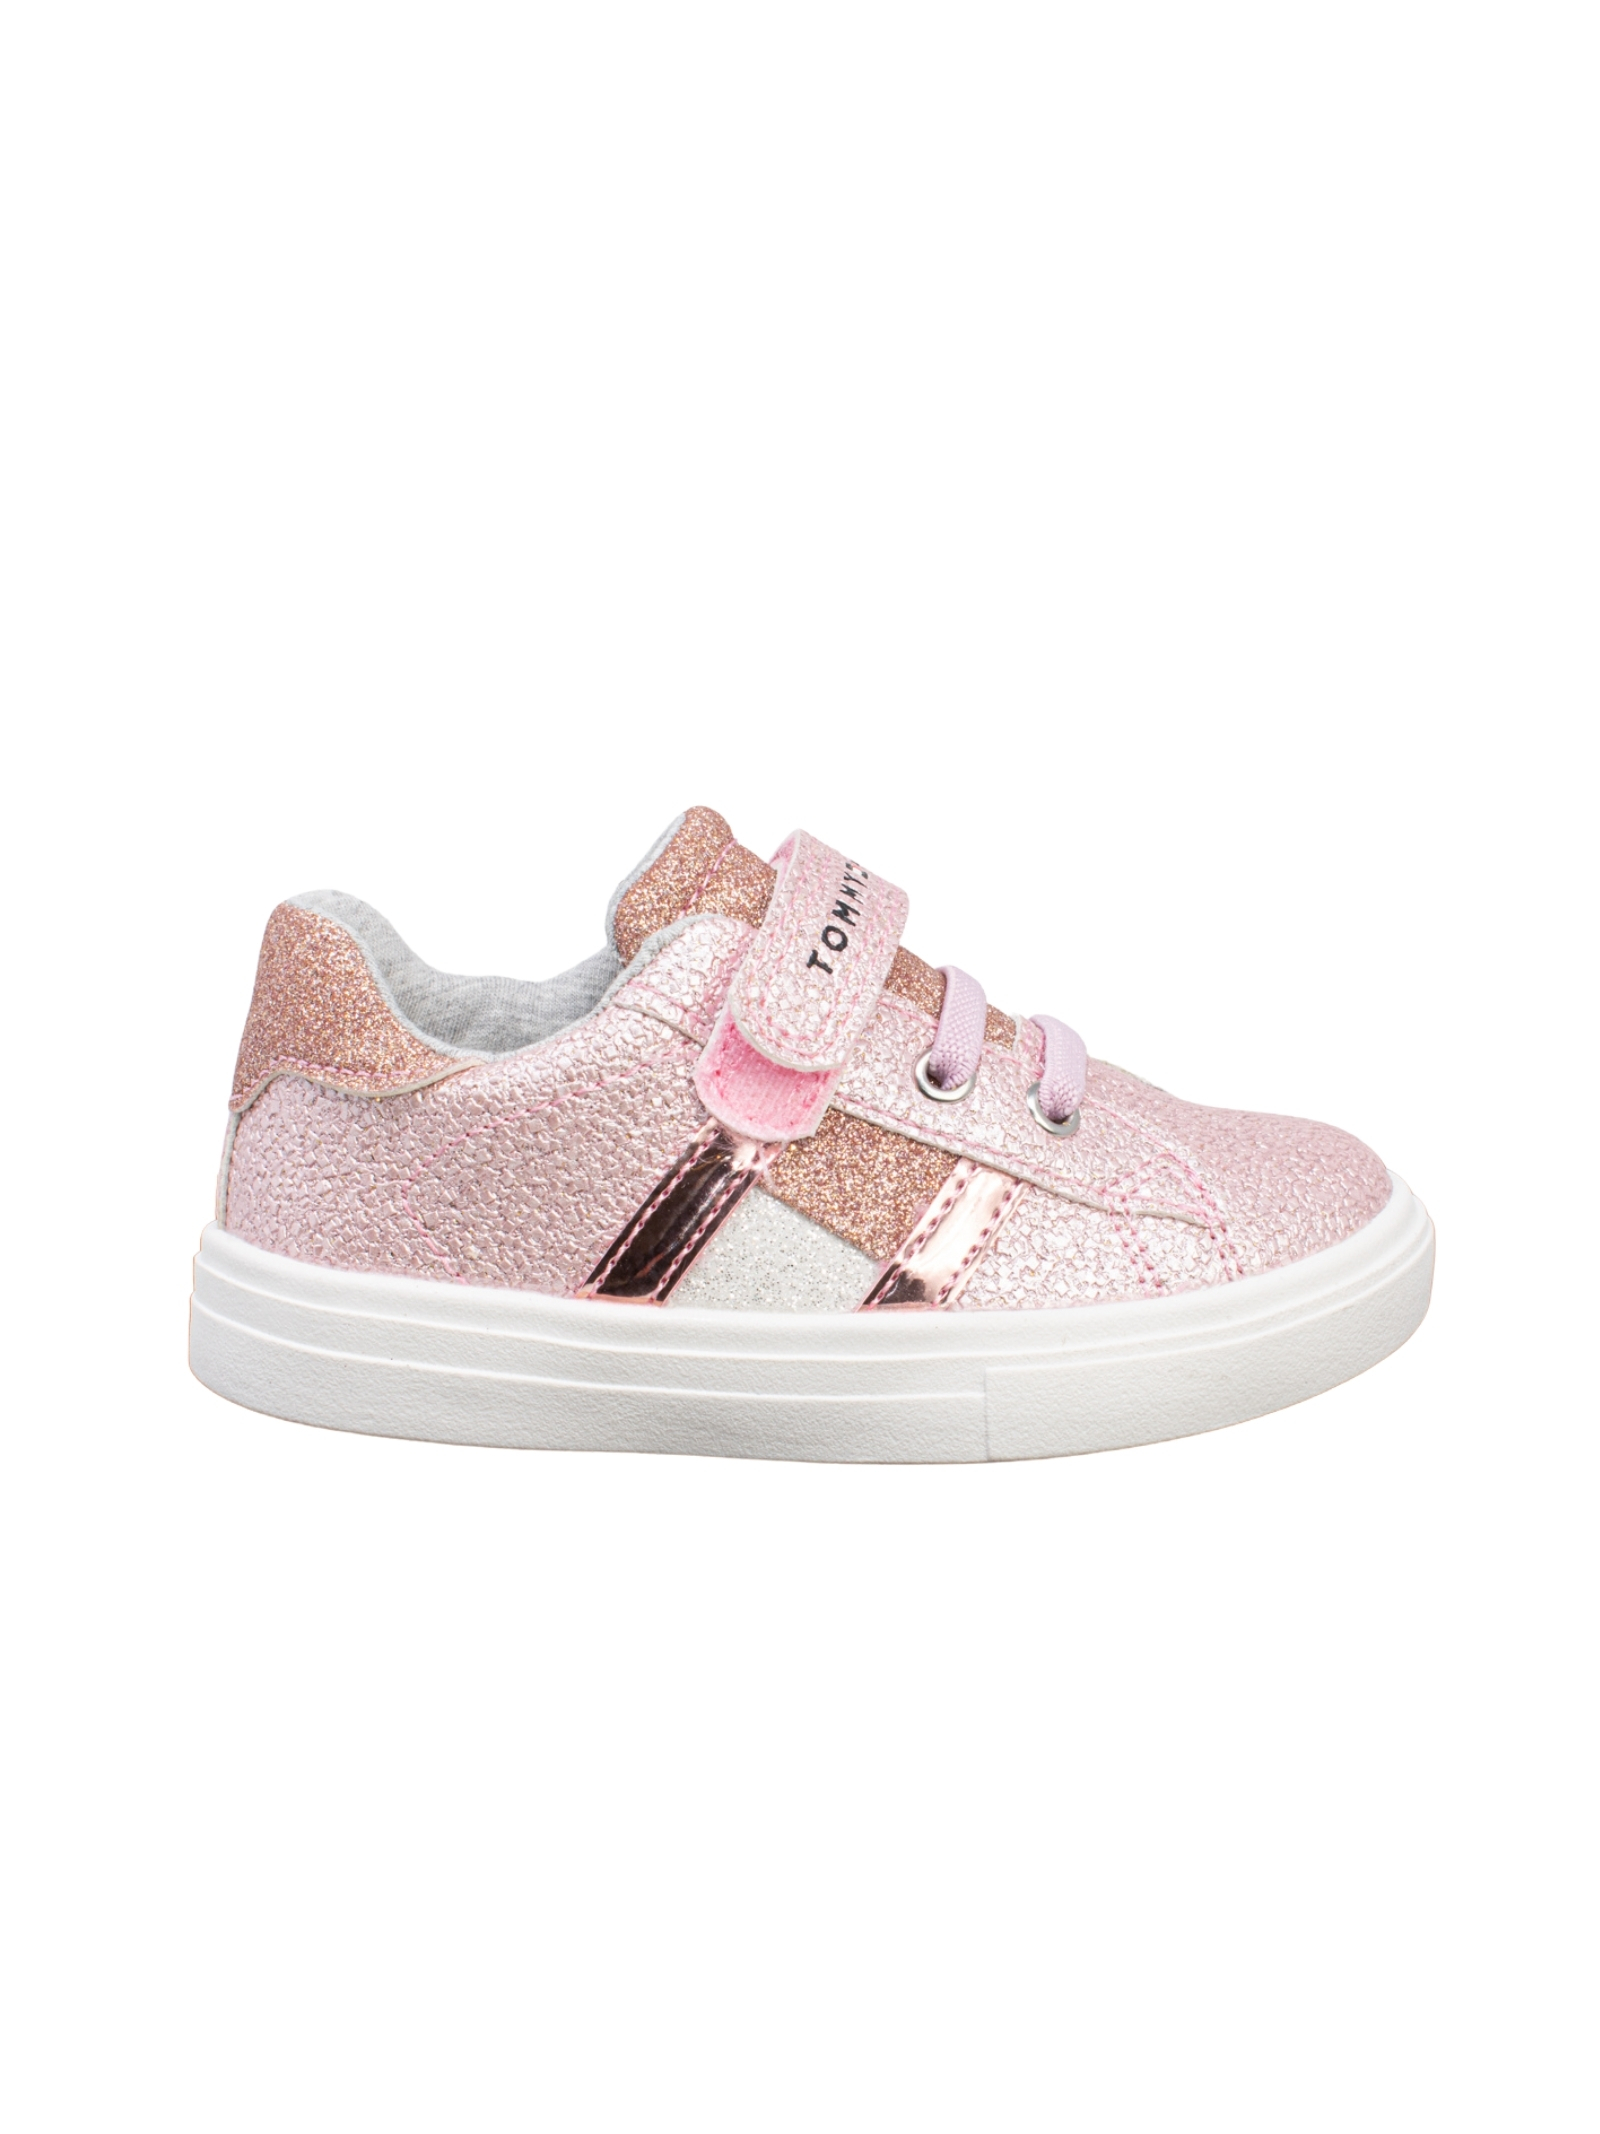 Sneakers Bambina Glitter Rosa TOMMY HILFIGER KIDS | Sneakers | T1A4310141160302ROSA